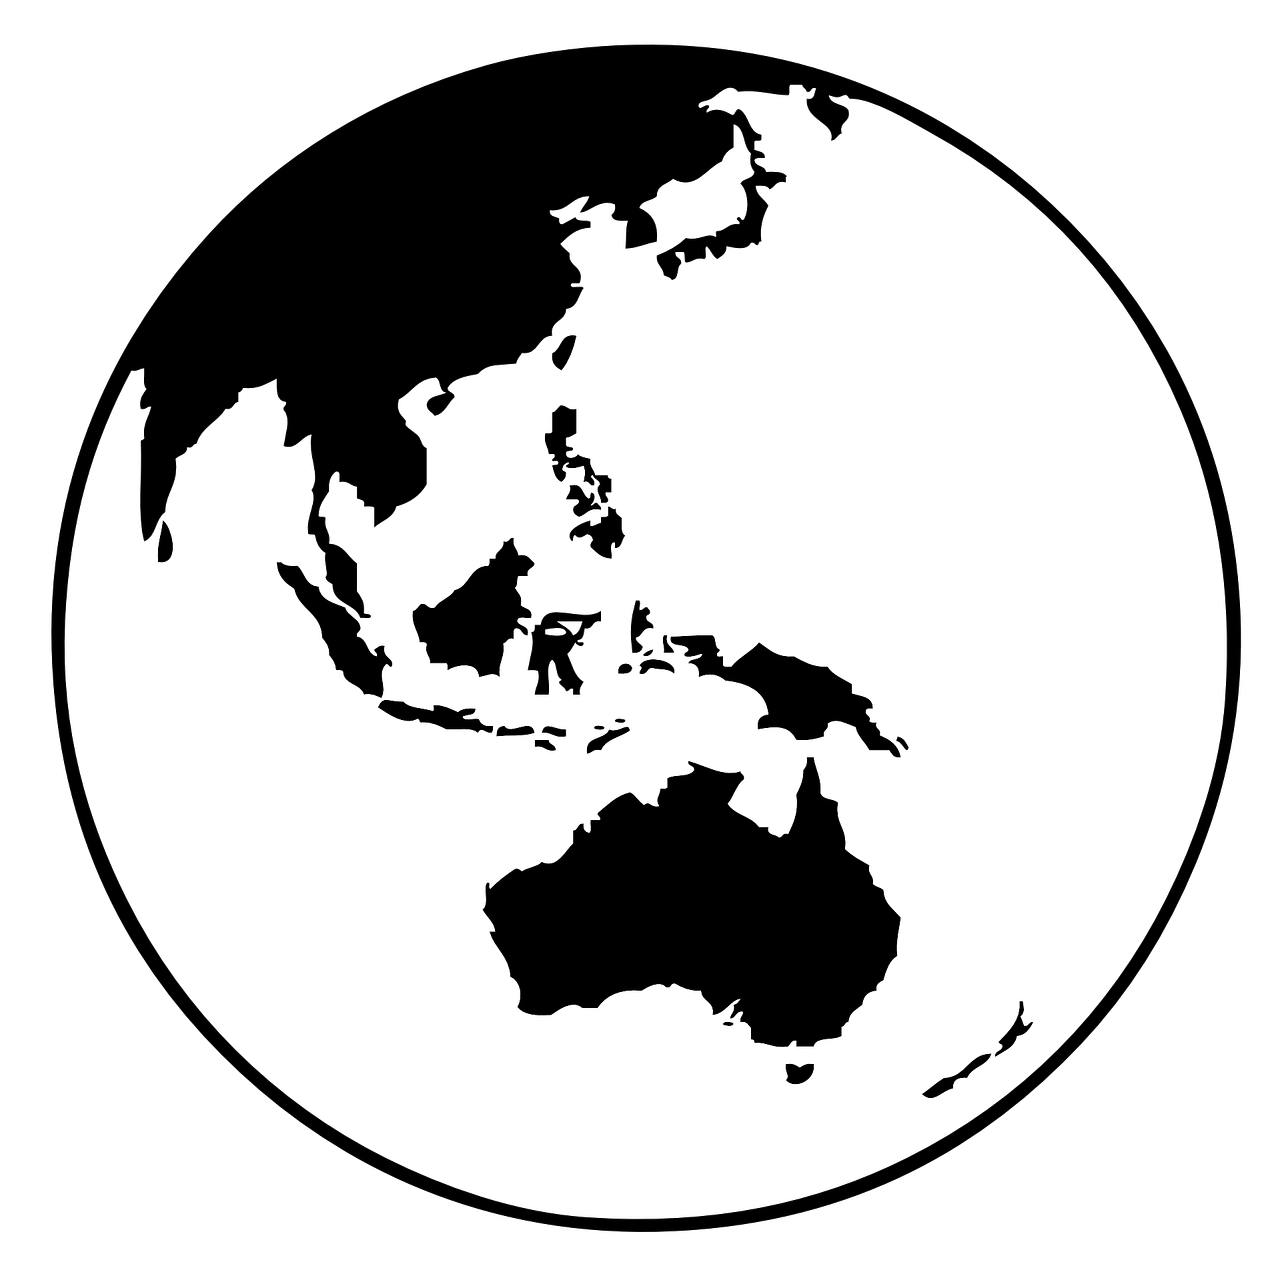 how to draw globe on a ball 13